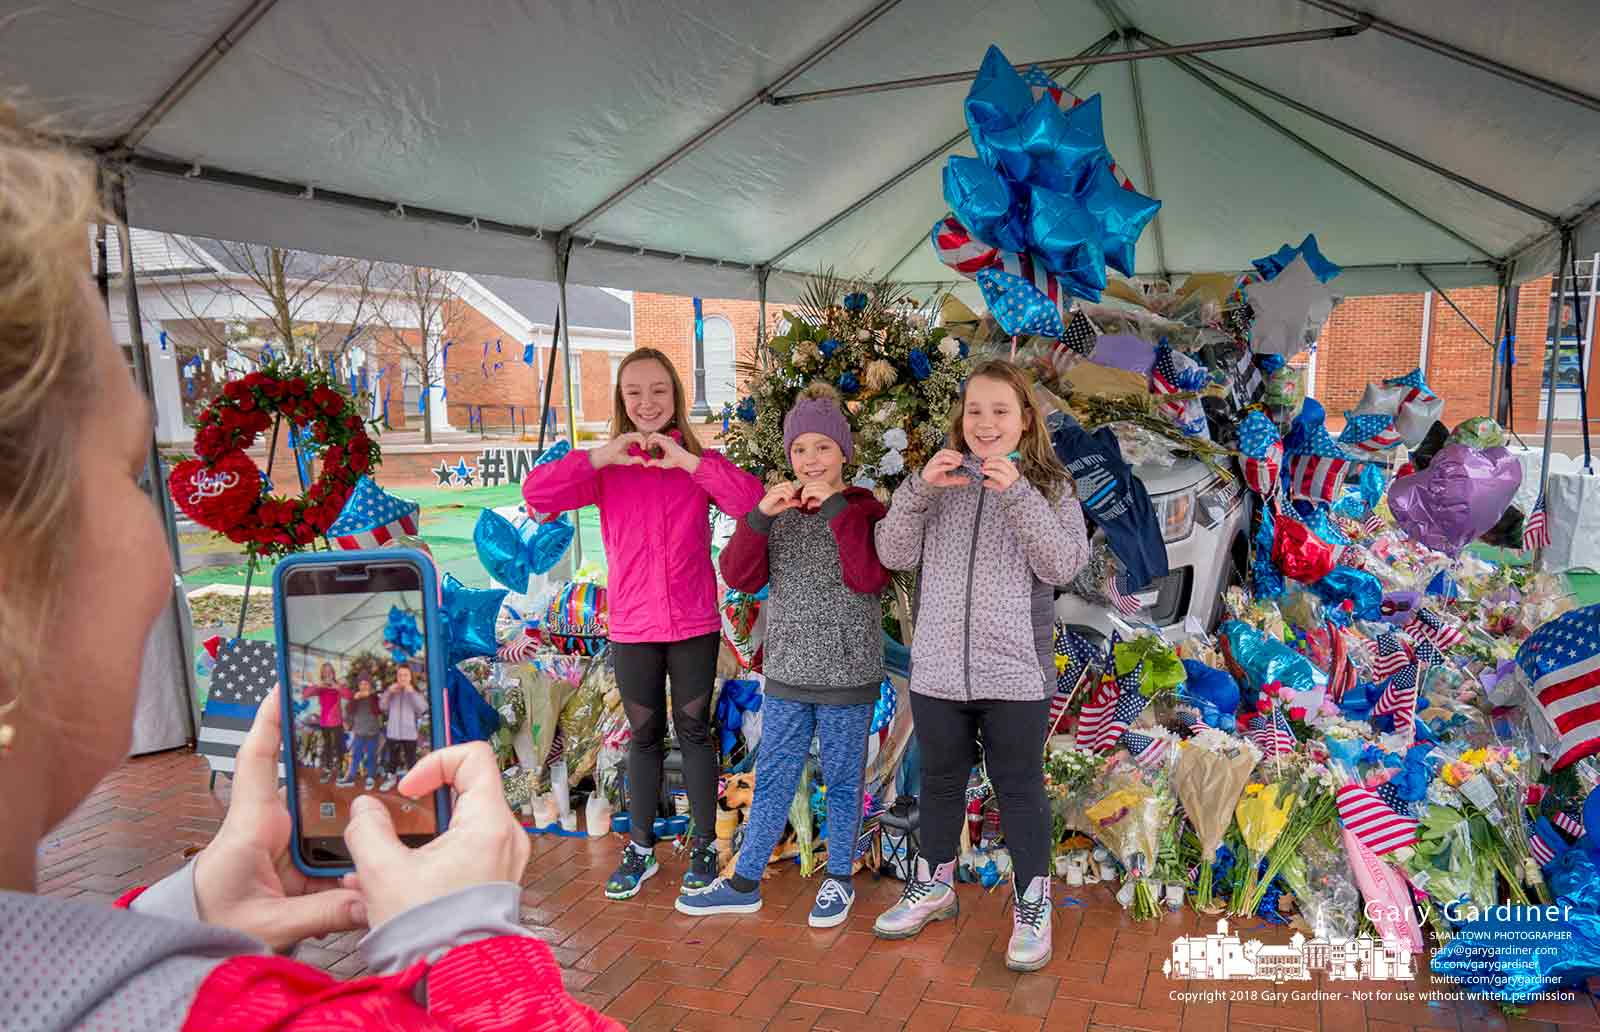 Three children pose with heart-shaped hands for a photo in front of the memorial for Westerville Police Officers Tony Morelli and Eric Joering at city hall. My Final Photo for Feb. 19, 2018.